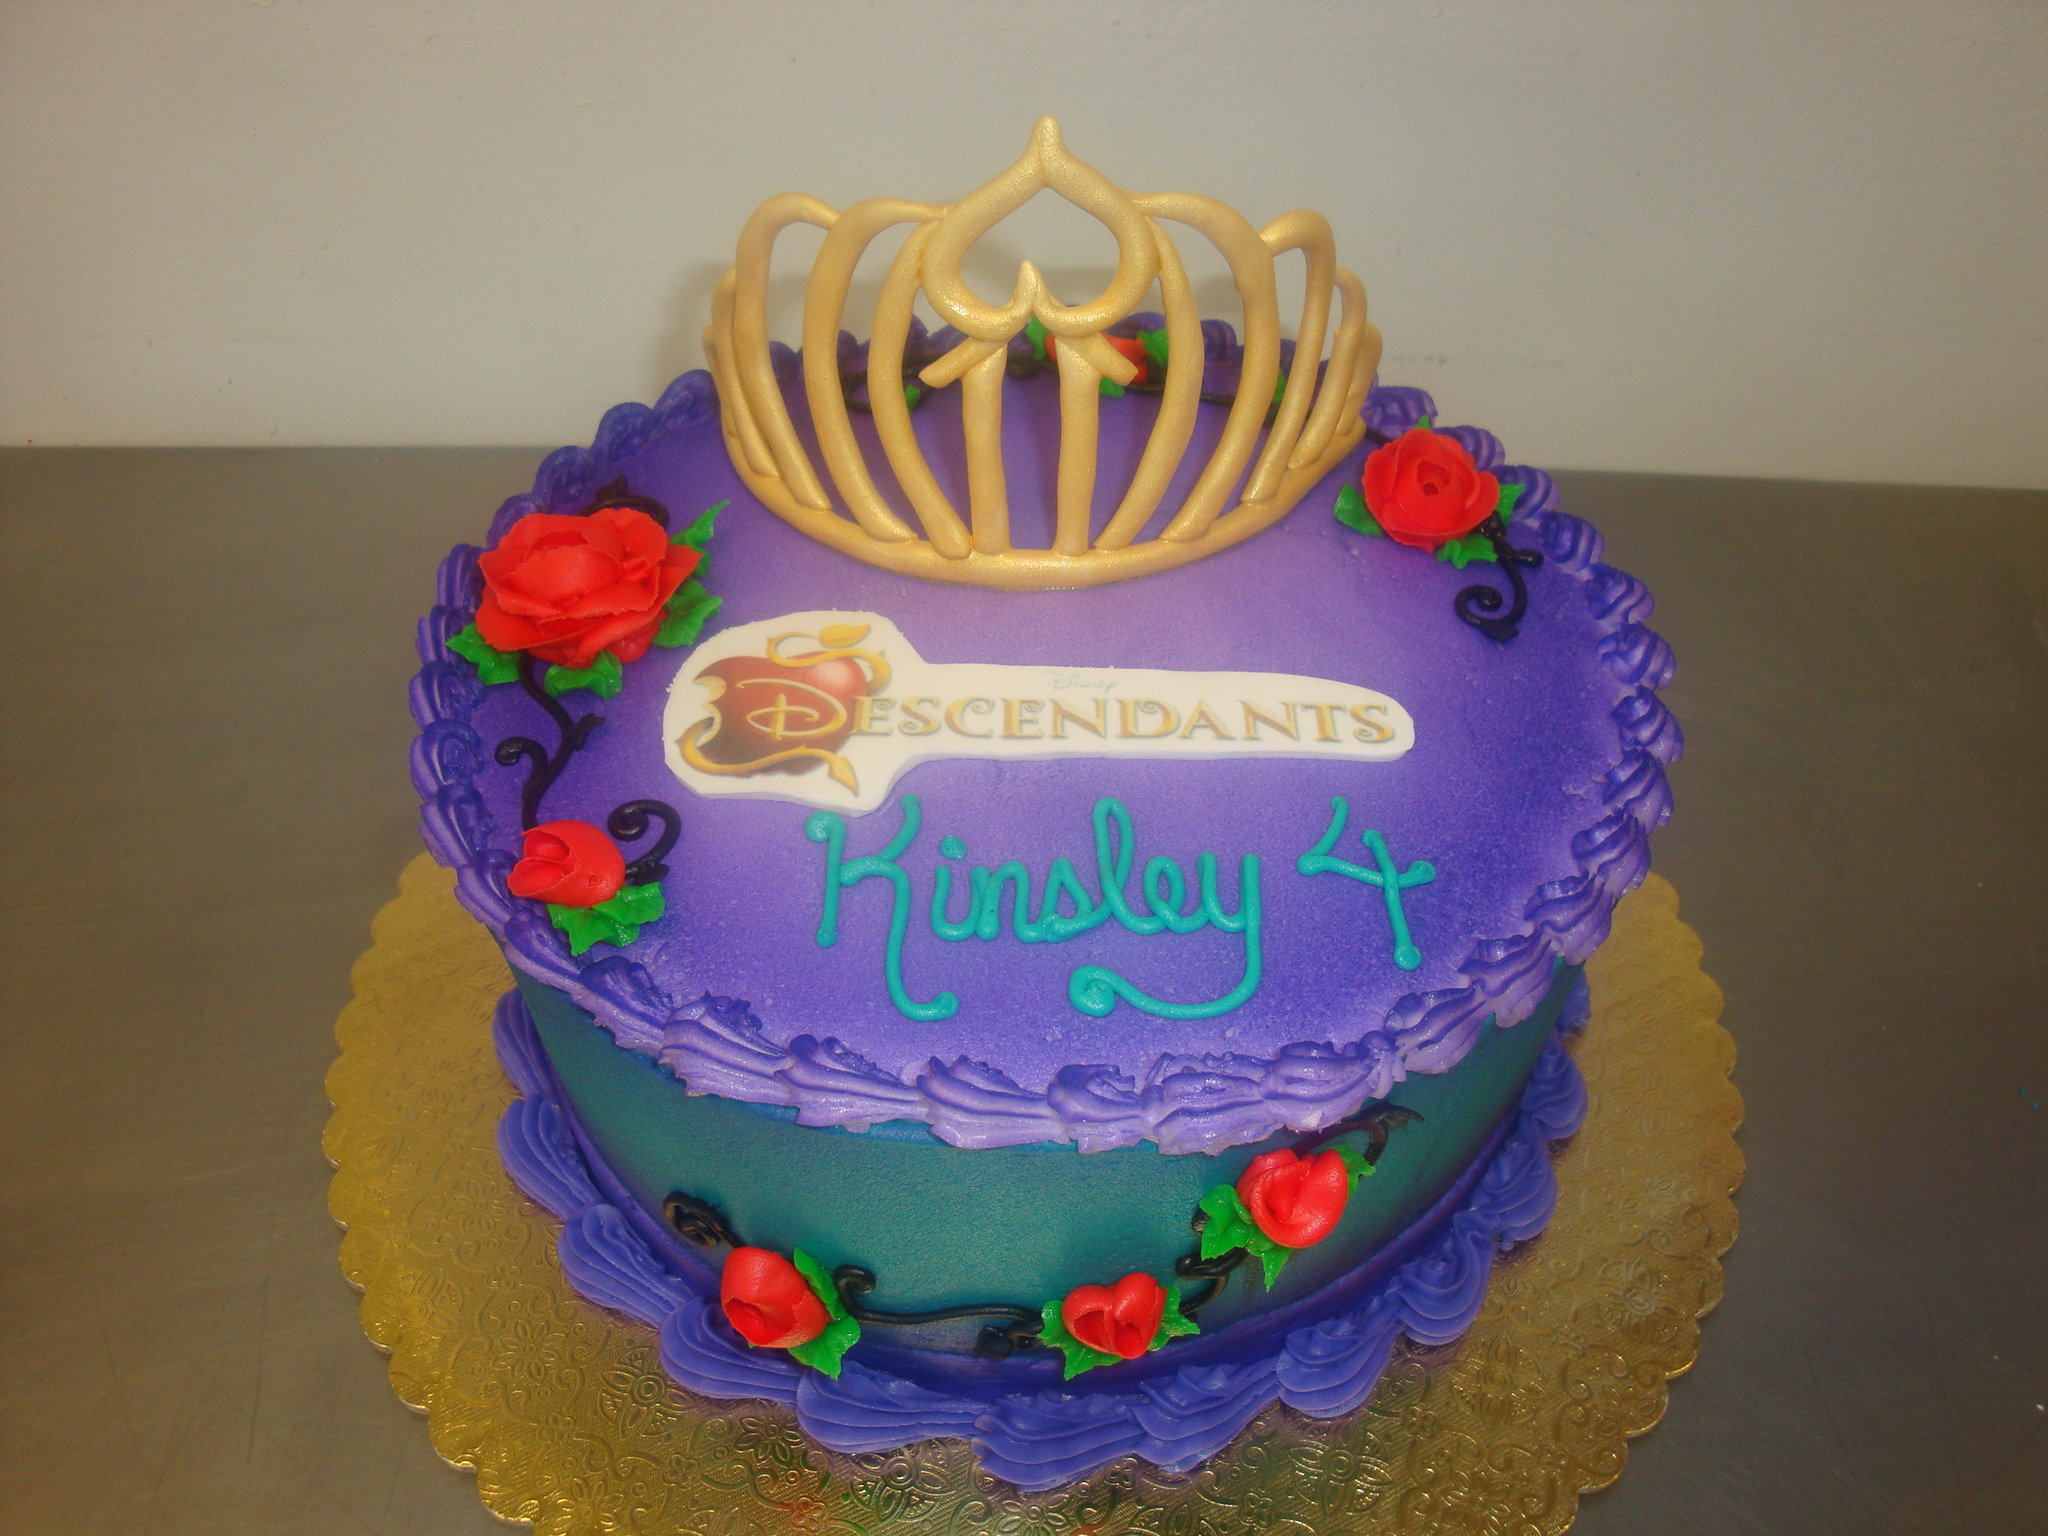 15 servings with airbrushing and gumpaste crown $90